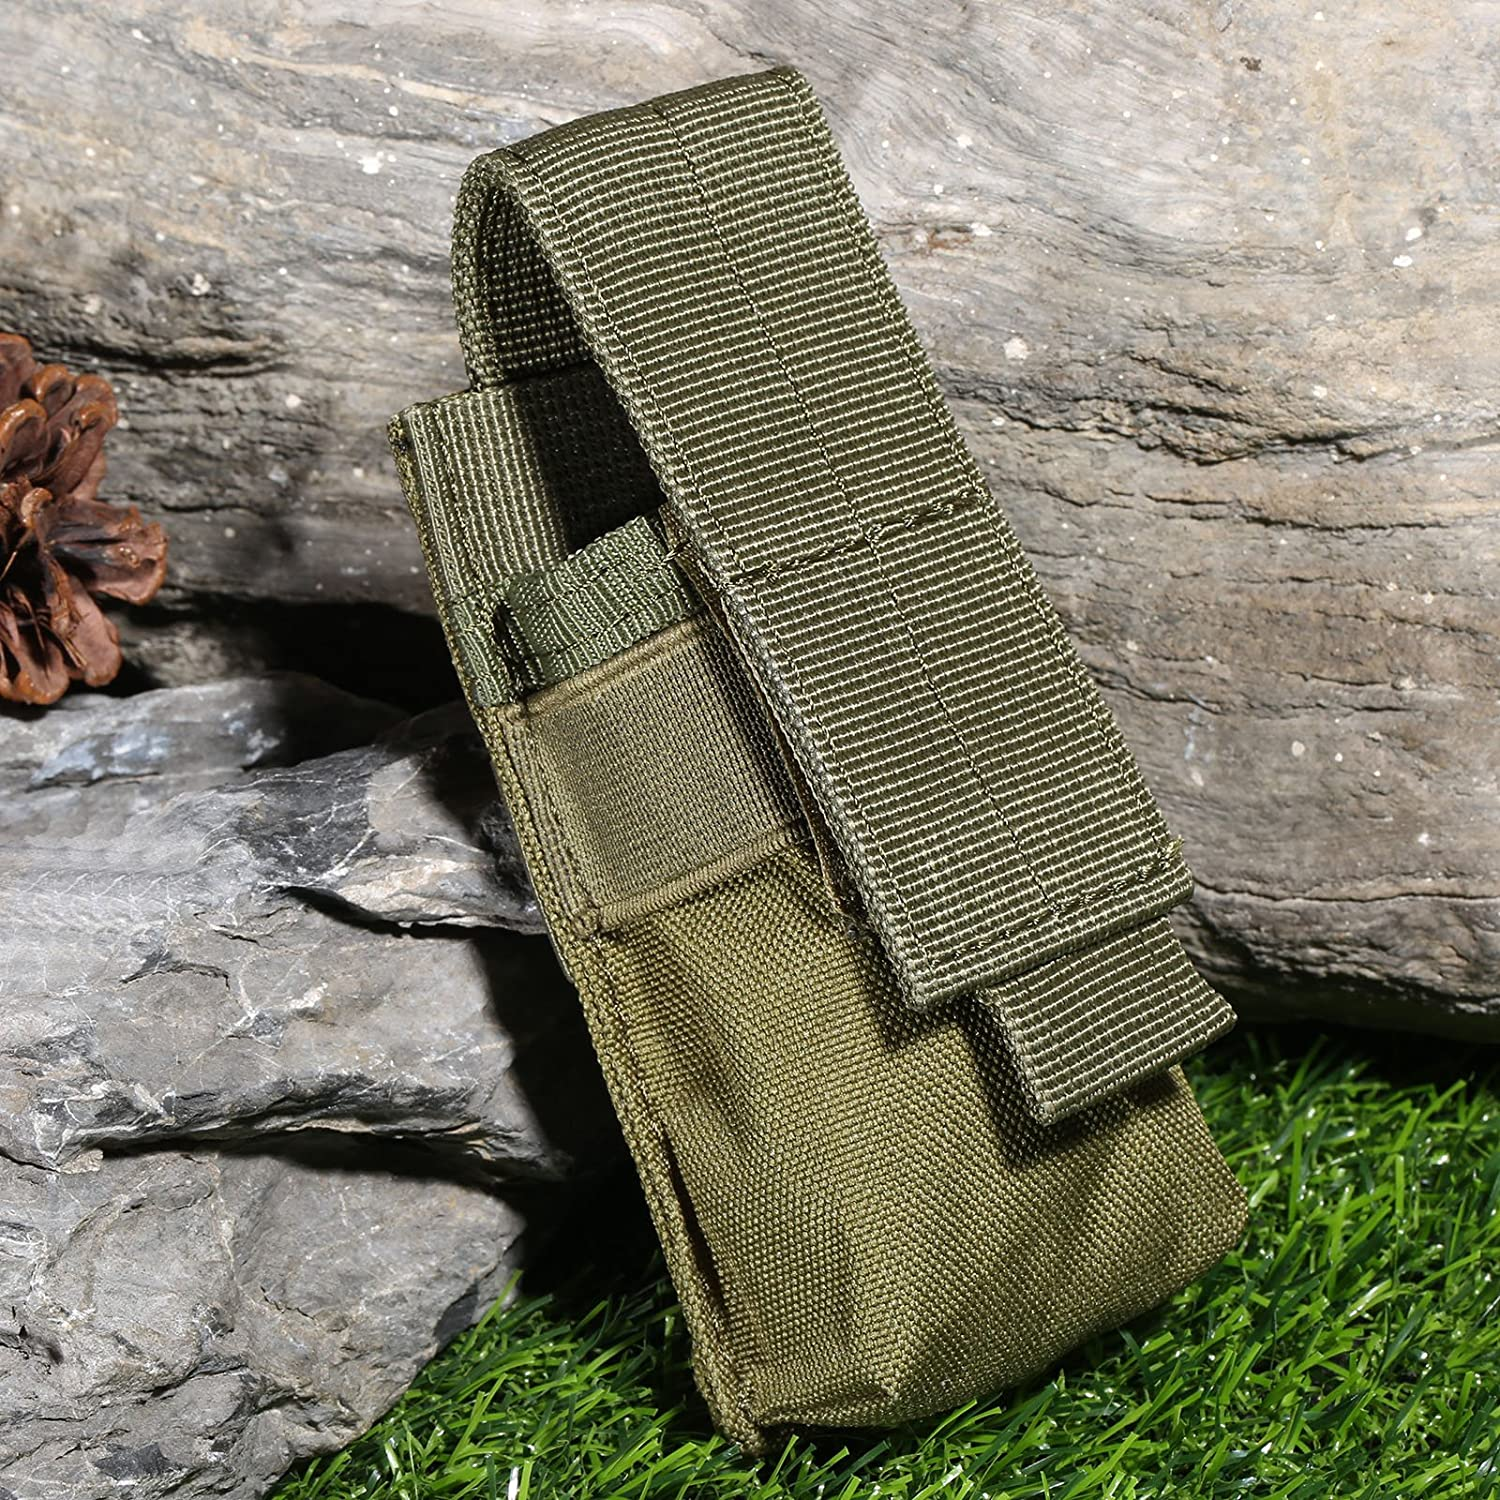 Outdoor Tactical Flashlight Mini Bag Army Fans Molle Equipment Single Magazine Mag Pouch For Vest Rucksacks-Black